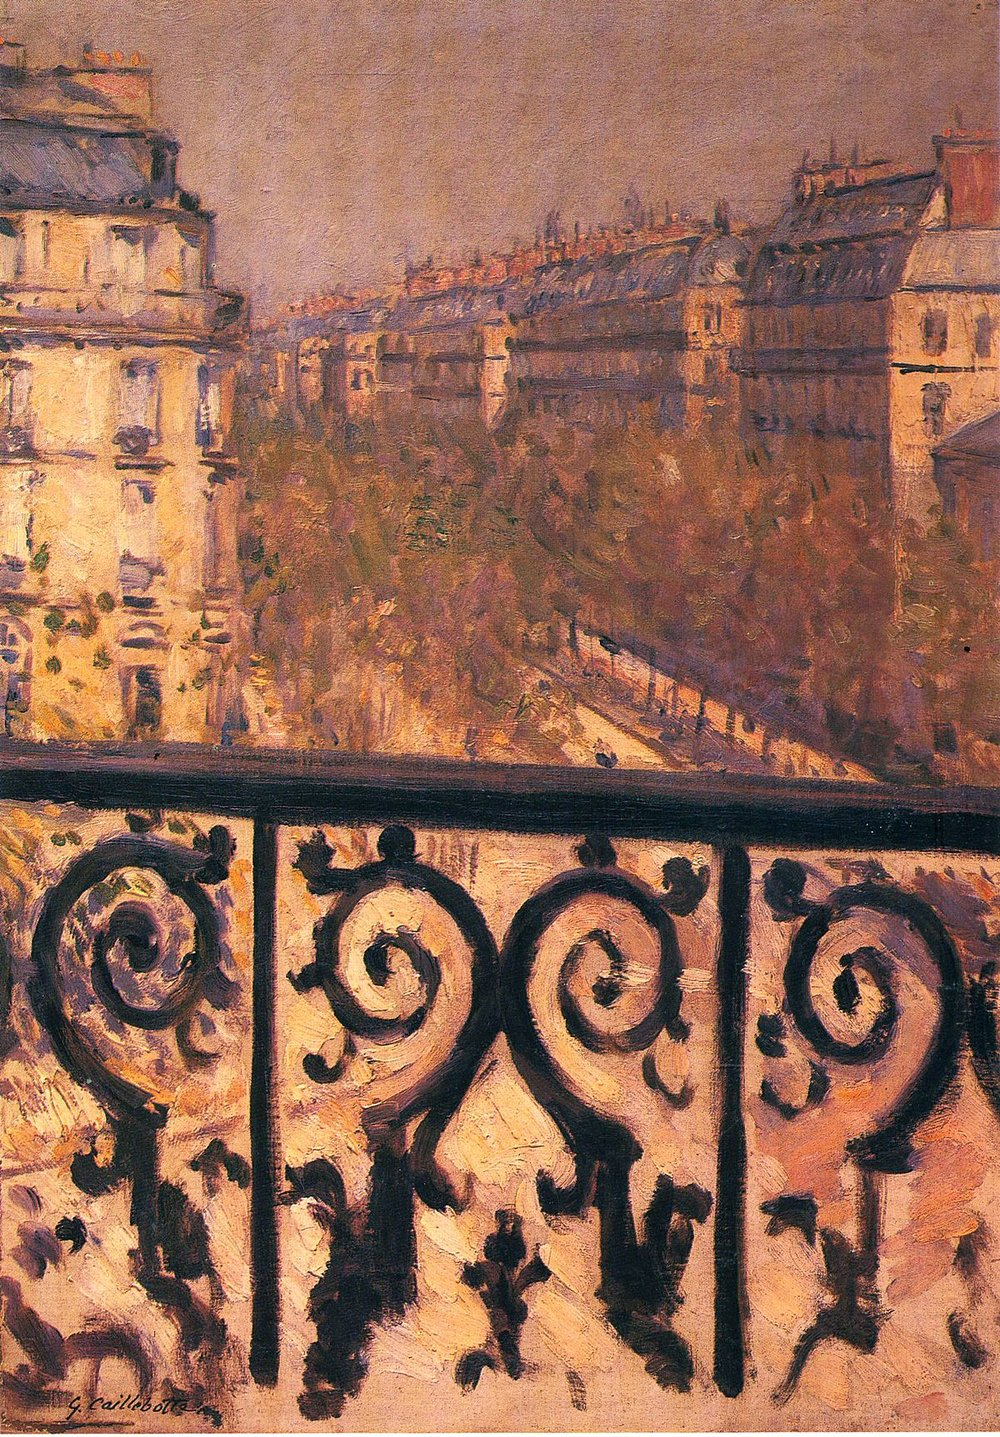 Gustave Caillebotte - A Balcony in Paris - Oil on Canvas, 1881, Private Collection.